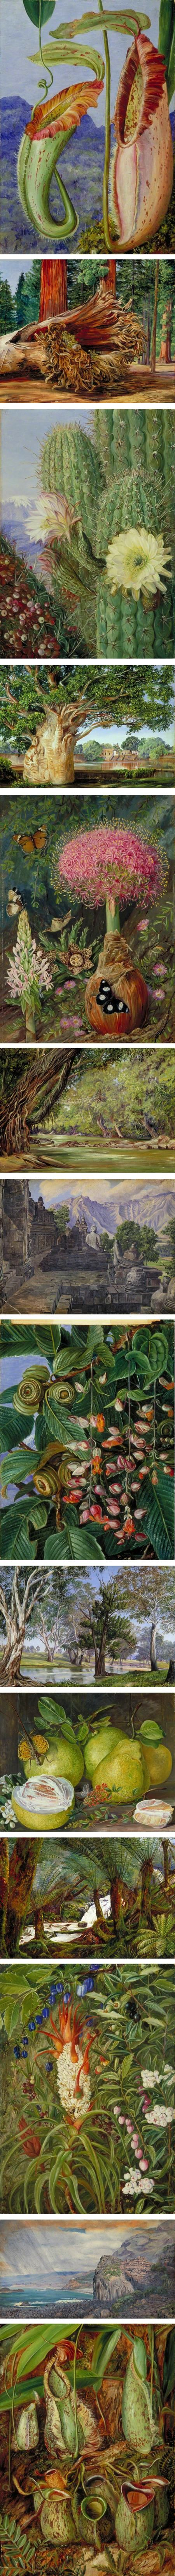 Marianne North, Victorian botanical art and landscapes. I like her in contrast to Rousseau- who did not get to travel and see his jungles in person...